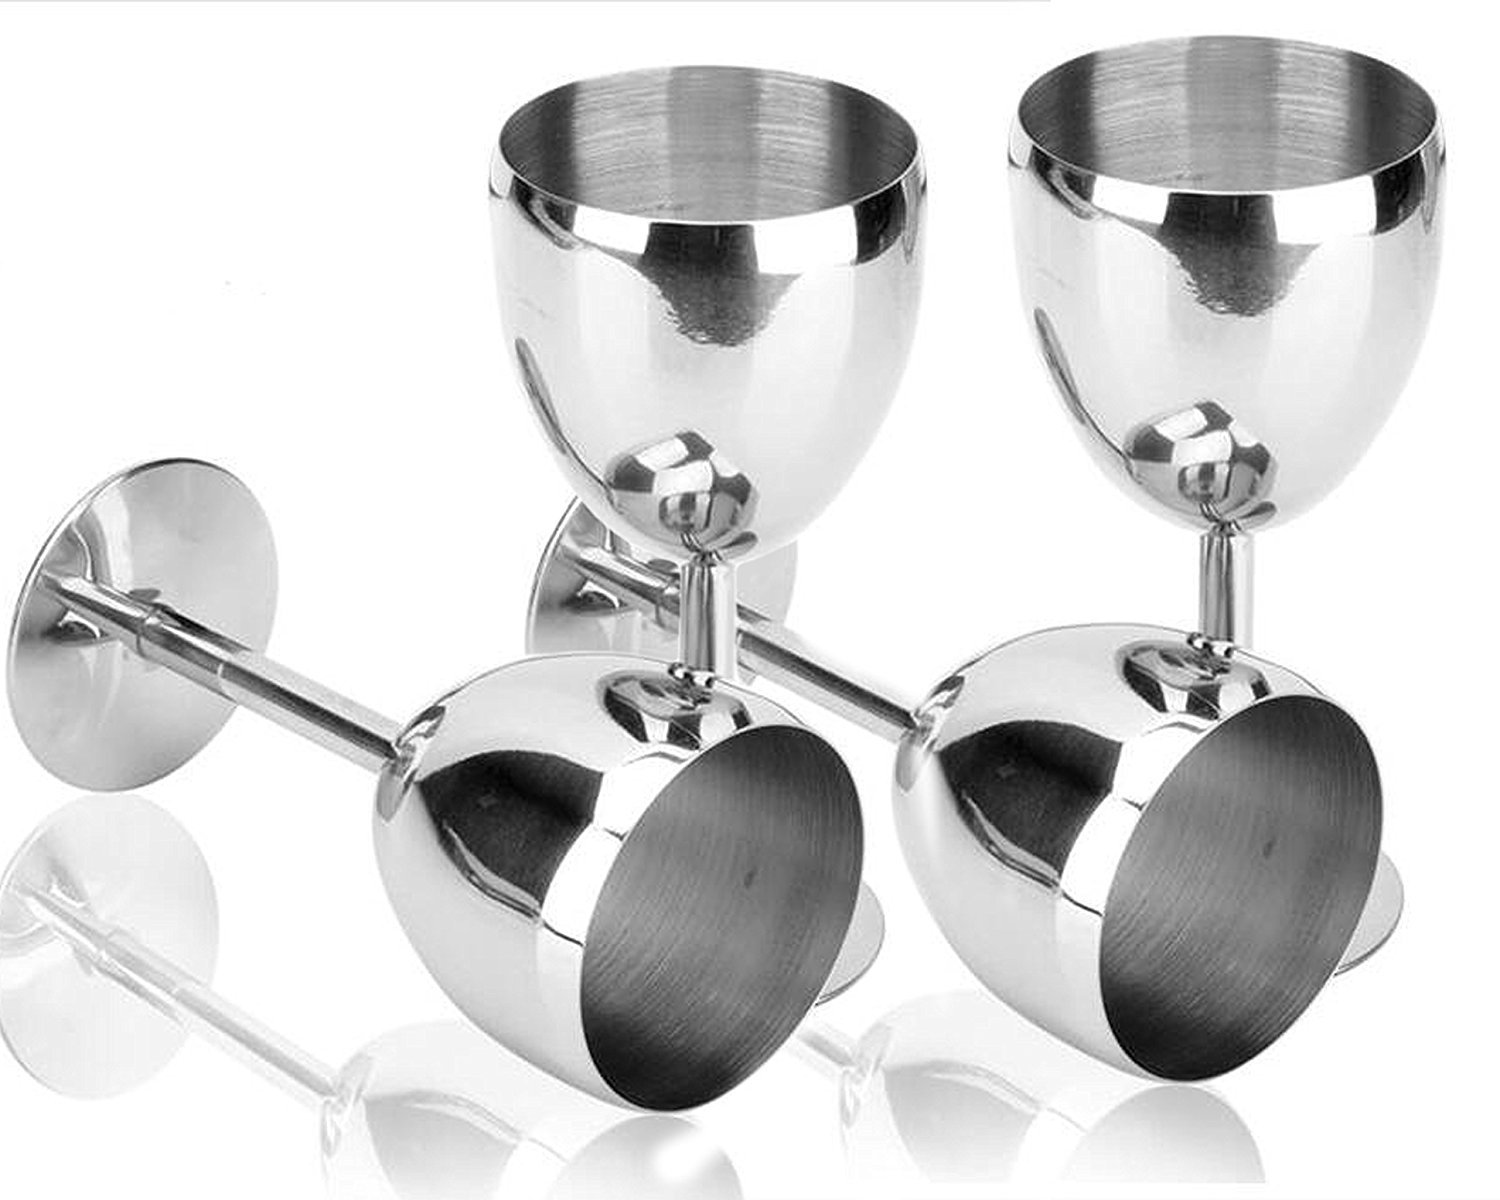 King International Stainless Steel Wine Glass Champagne Goblet Cup Drinking Mug SET OF 6 PIECES Elegant Wine Glasses Made of Dishwasher Safe Unbreakable BPA Free Shatterproof SS Great for Daily by King International (Image #7)